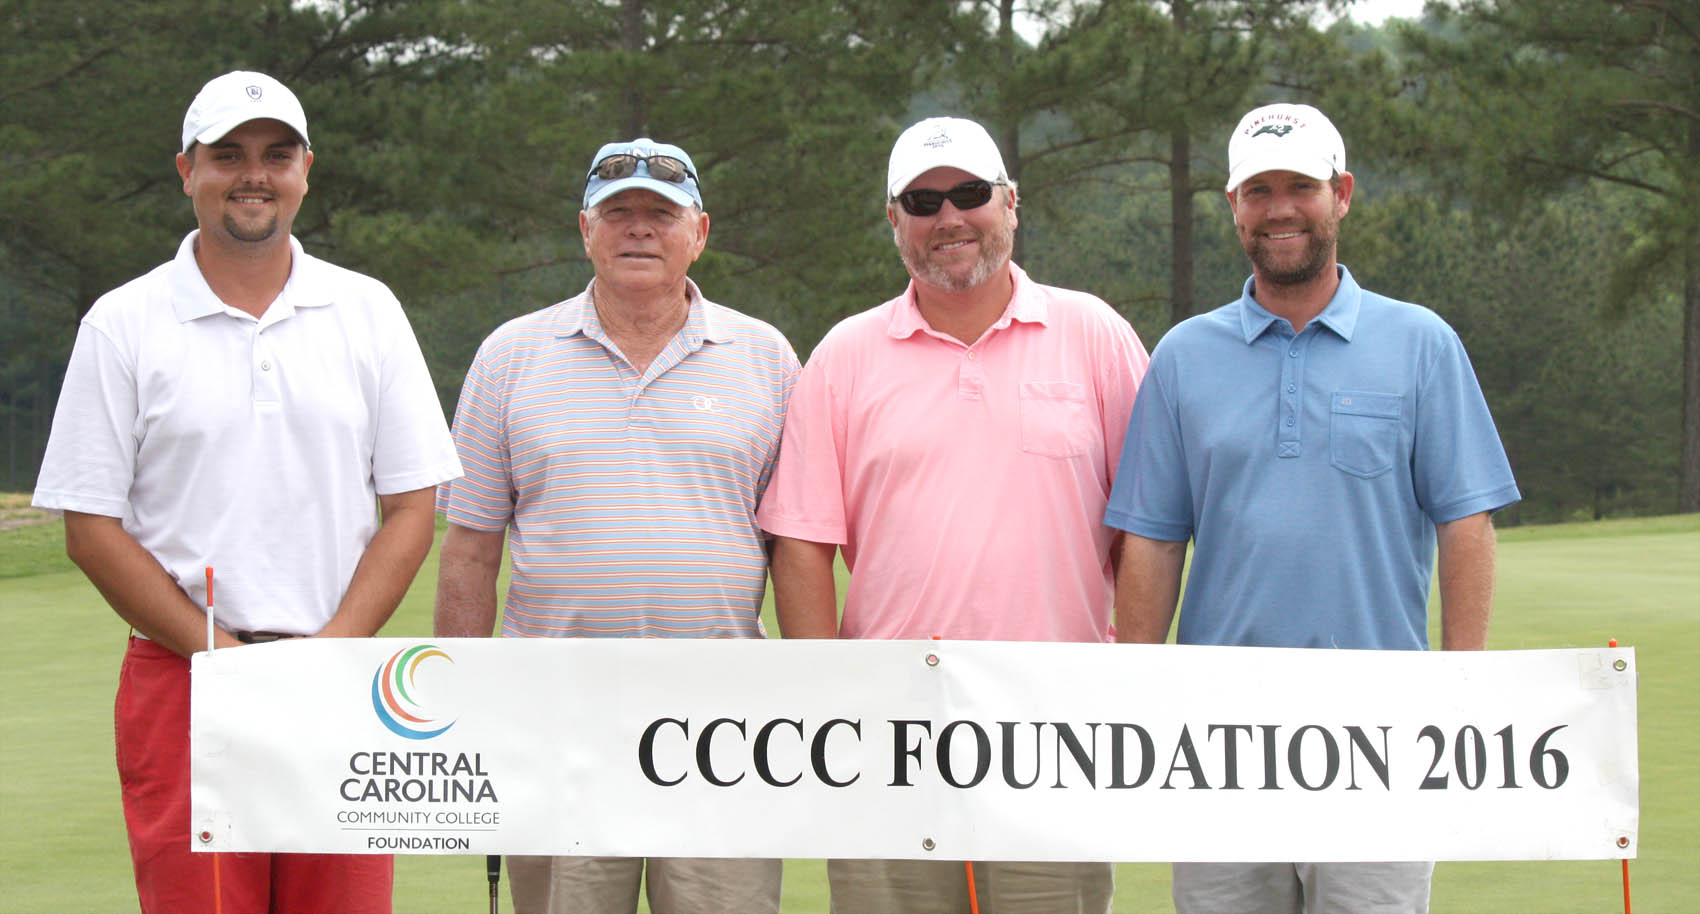 Click to enlarge,  Members of the first flight winning team in the Central Carolina Community College Foundation Chatham Golf Classic were Bobby Powell, David Wicker, Jack Radley, and Andy Phillips. For information about the Foundation, donating to it, establishing a scholarship, or other fund-raising events, contact Emily Hare, executive director of the CCCC Foundation, 919-718-7230, or ehare@cccc.edu. Information is also available at its website, www.cccc.edu/foundation.